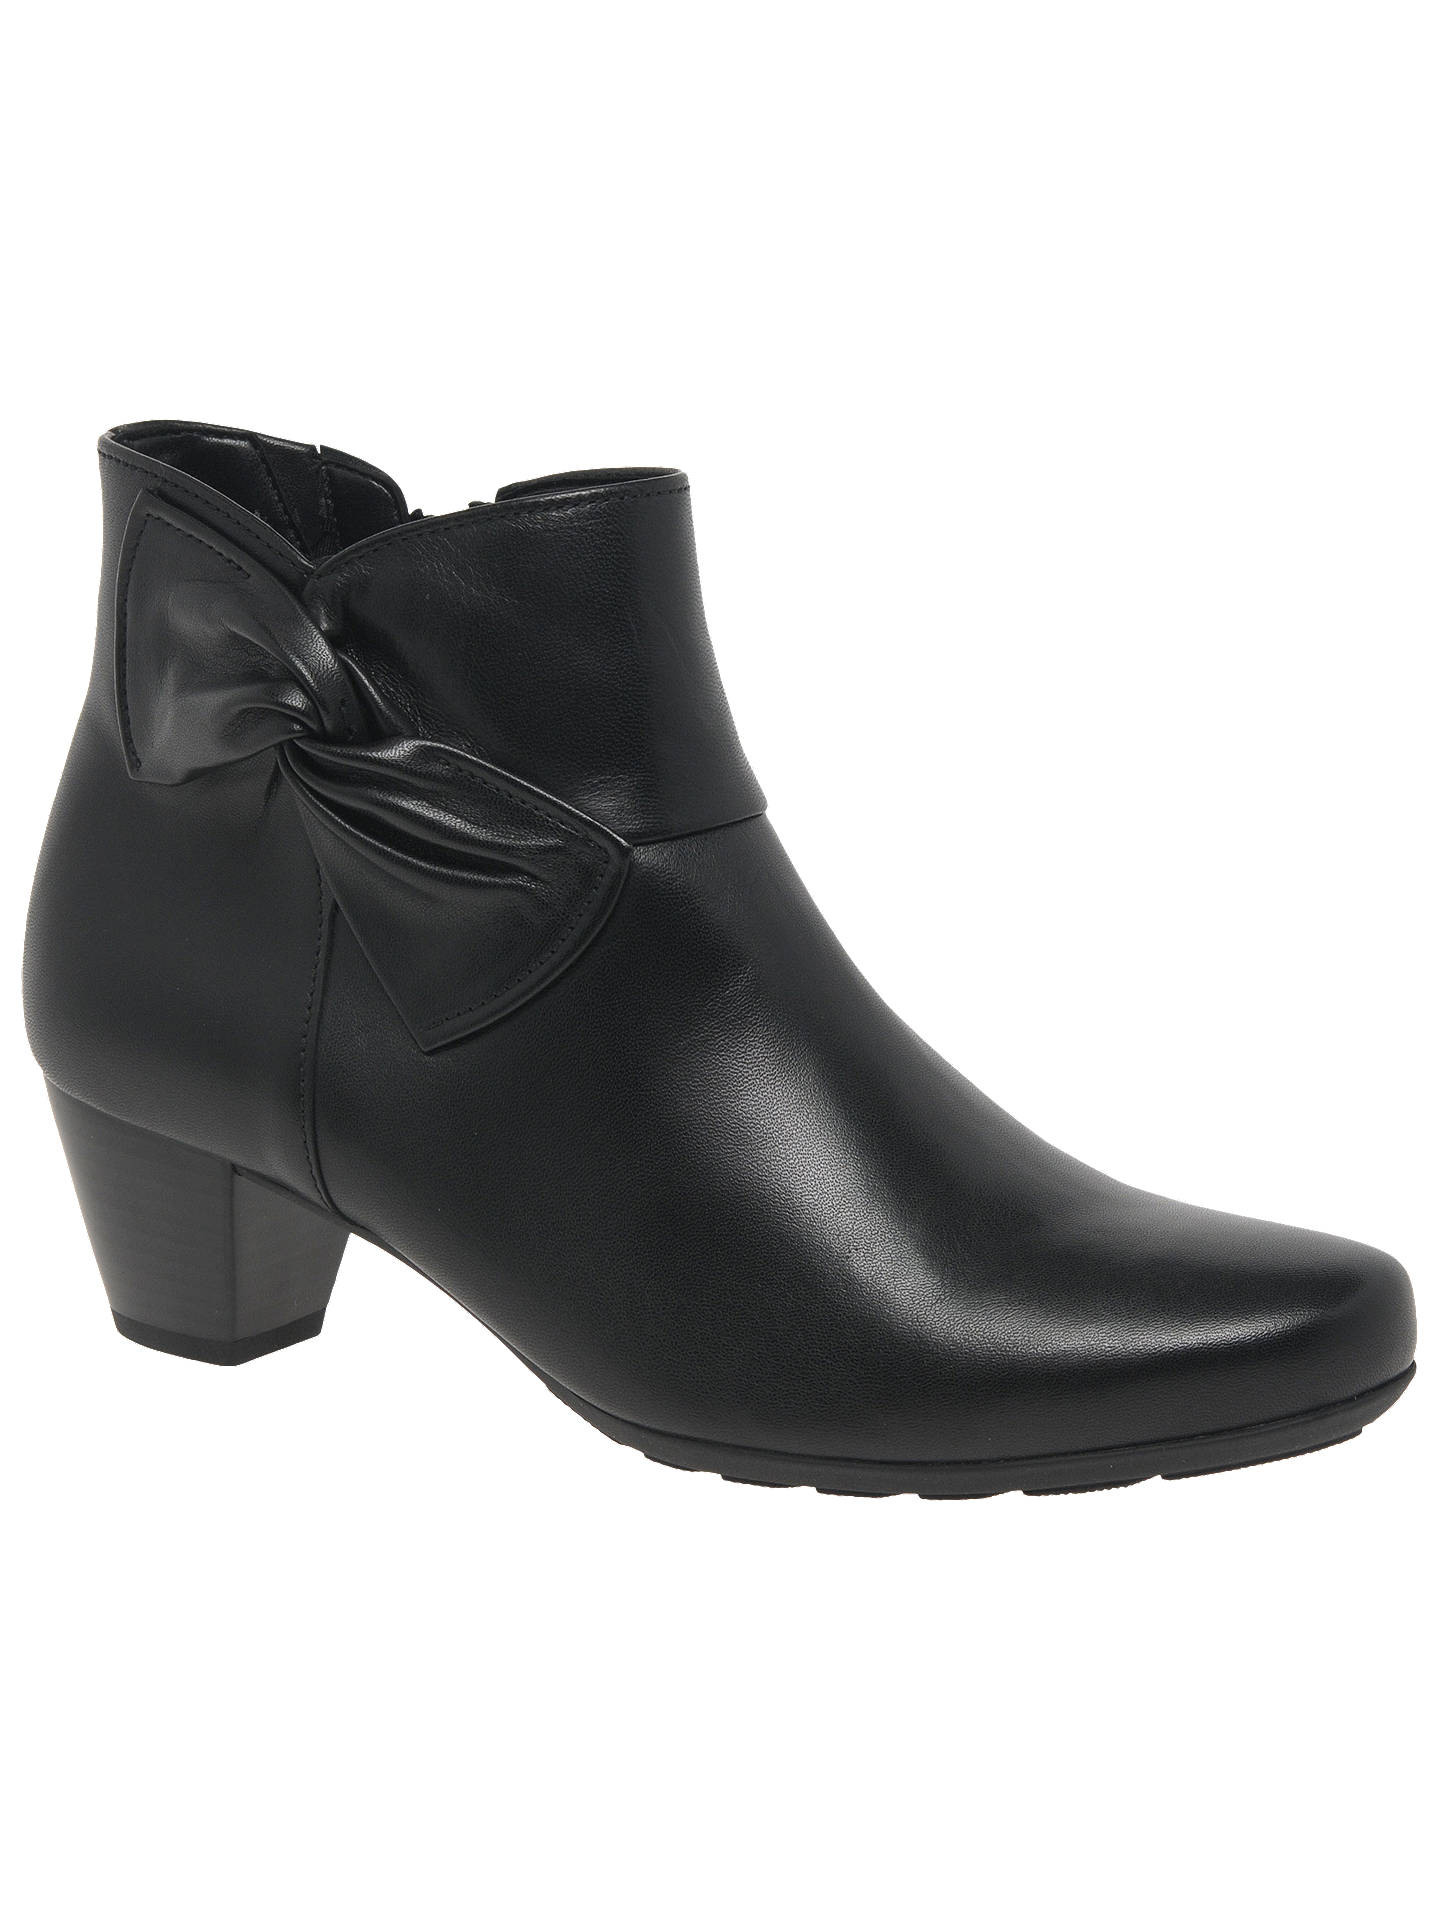 7a76f1ab0fa Buy Gabor Chicago Wide Fit Ankle Boots